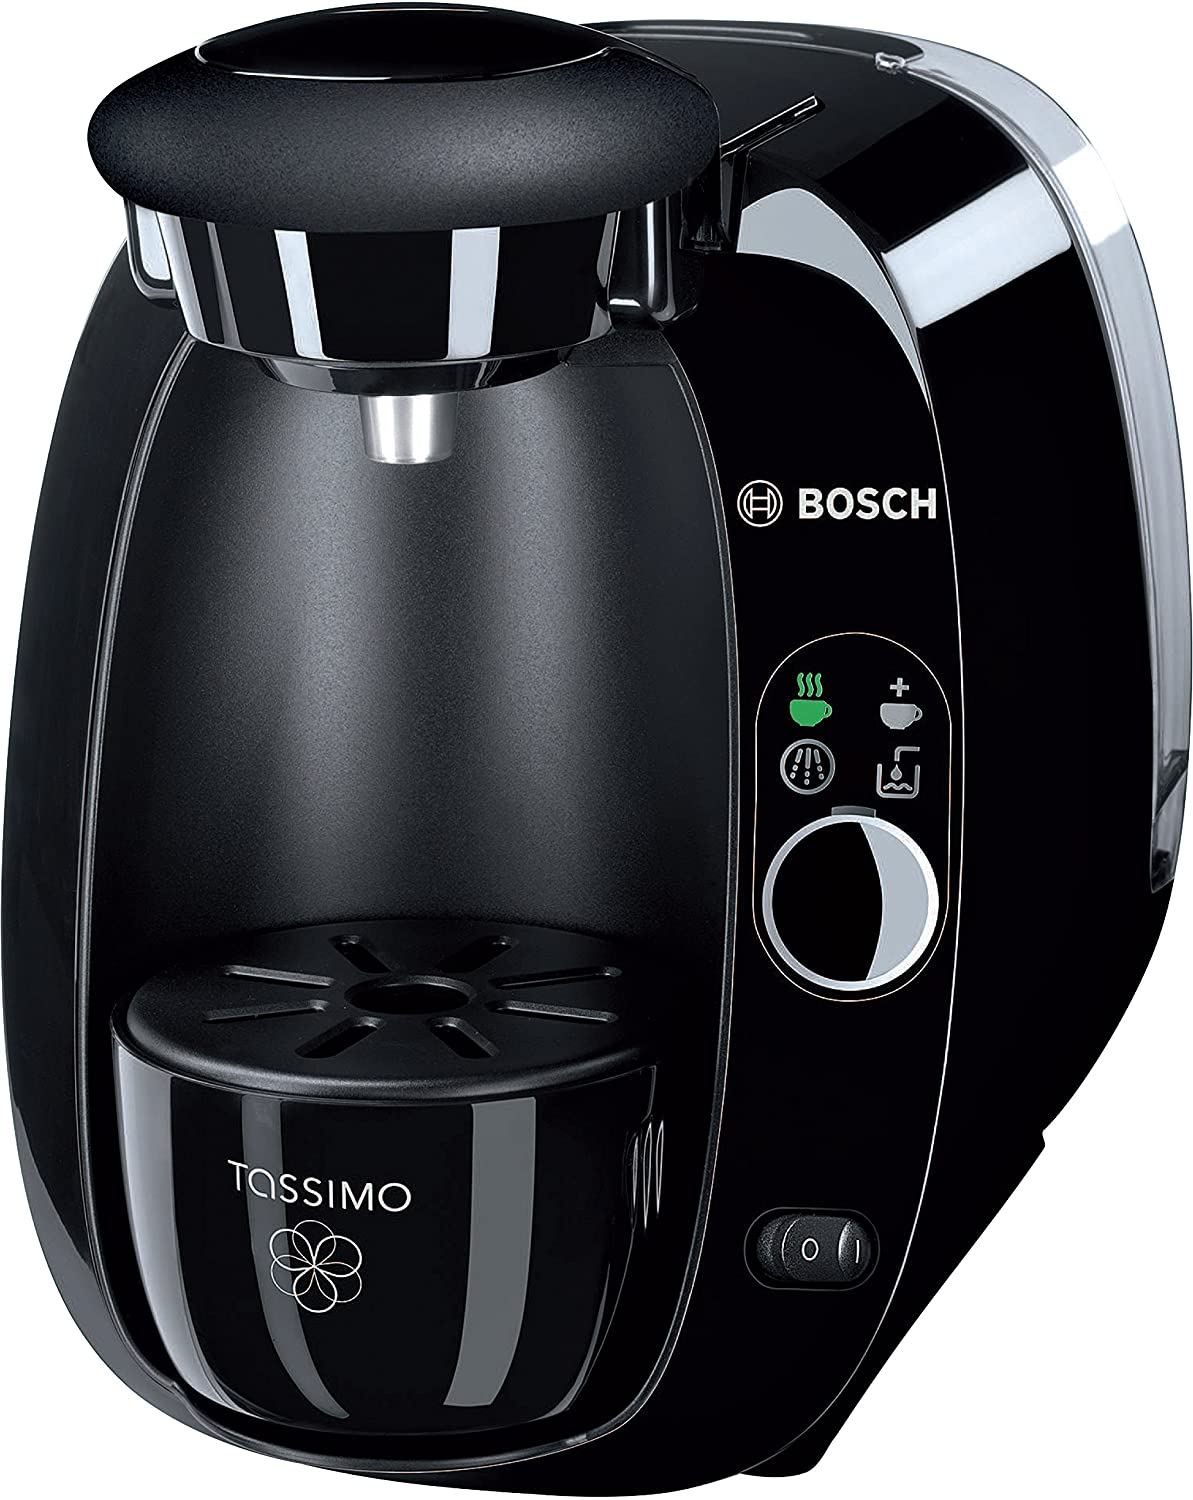 Bosch Tassimo T20 Amia Hot Beverage Coffee Espresso Maker Machine TAS2002GB NEW eBay